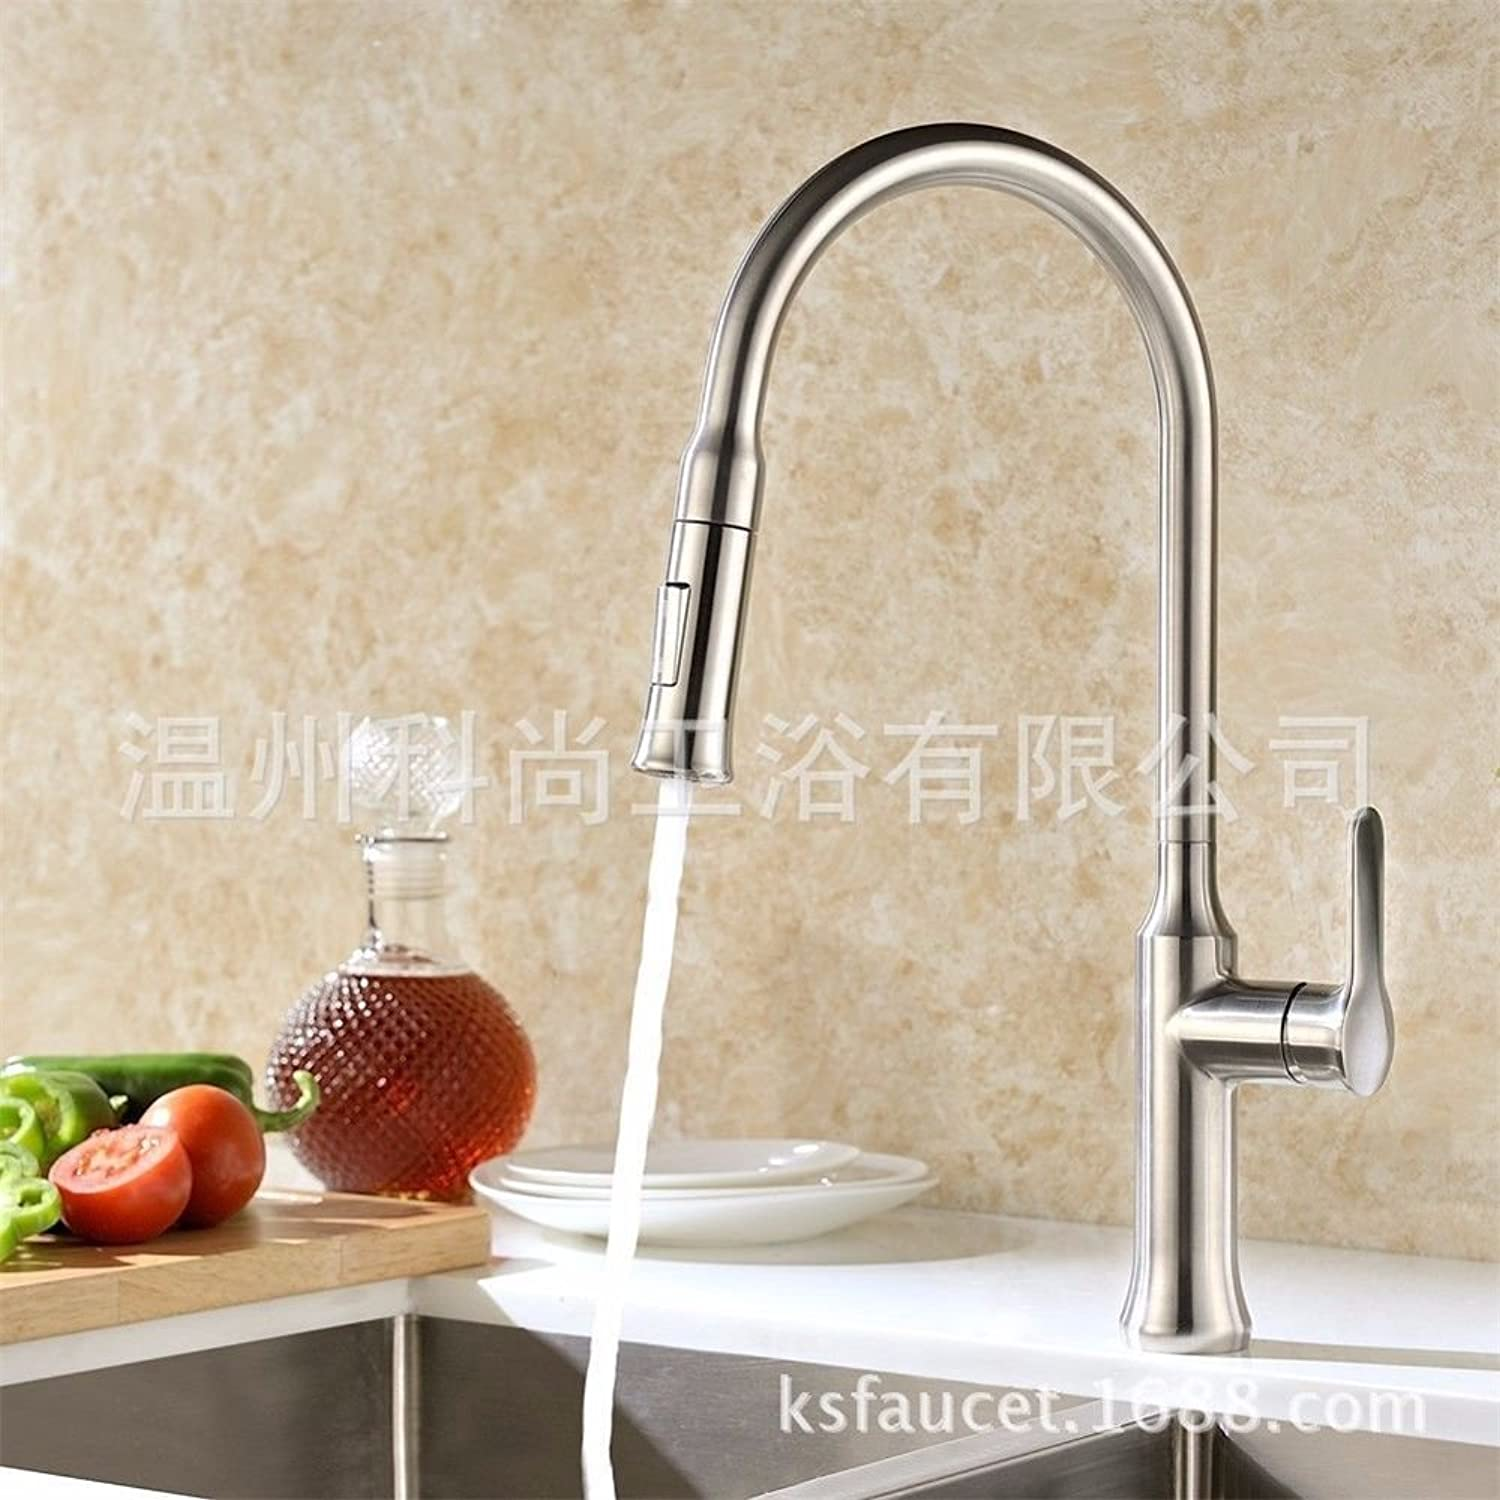 Gyps Faucet Basin Mixer Tap Waterfall Faucet Antique Bathroom The black pull-down kitchen sink faucet features two multi-function shower head brushed Bathroom Tub Lever Faucet